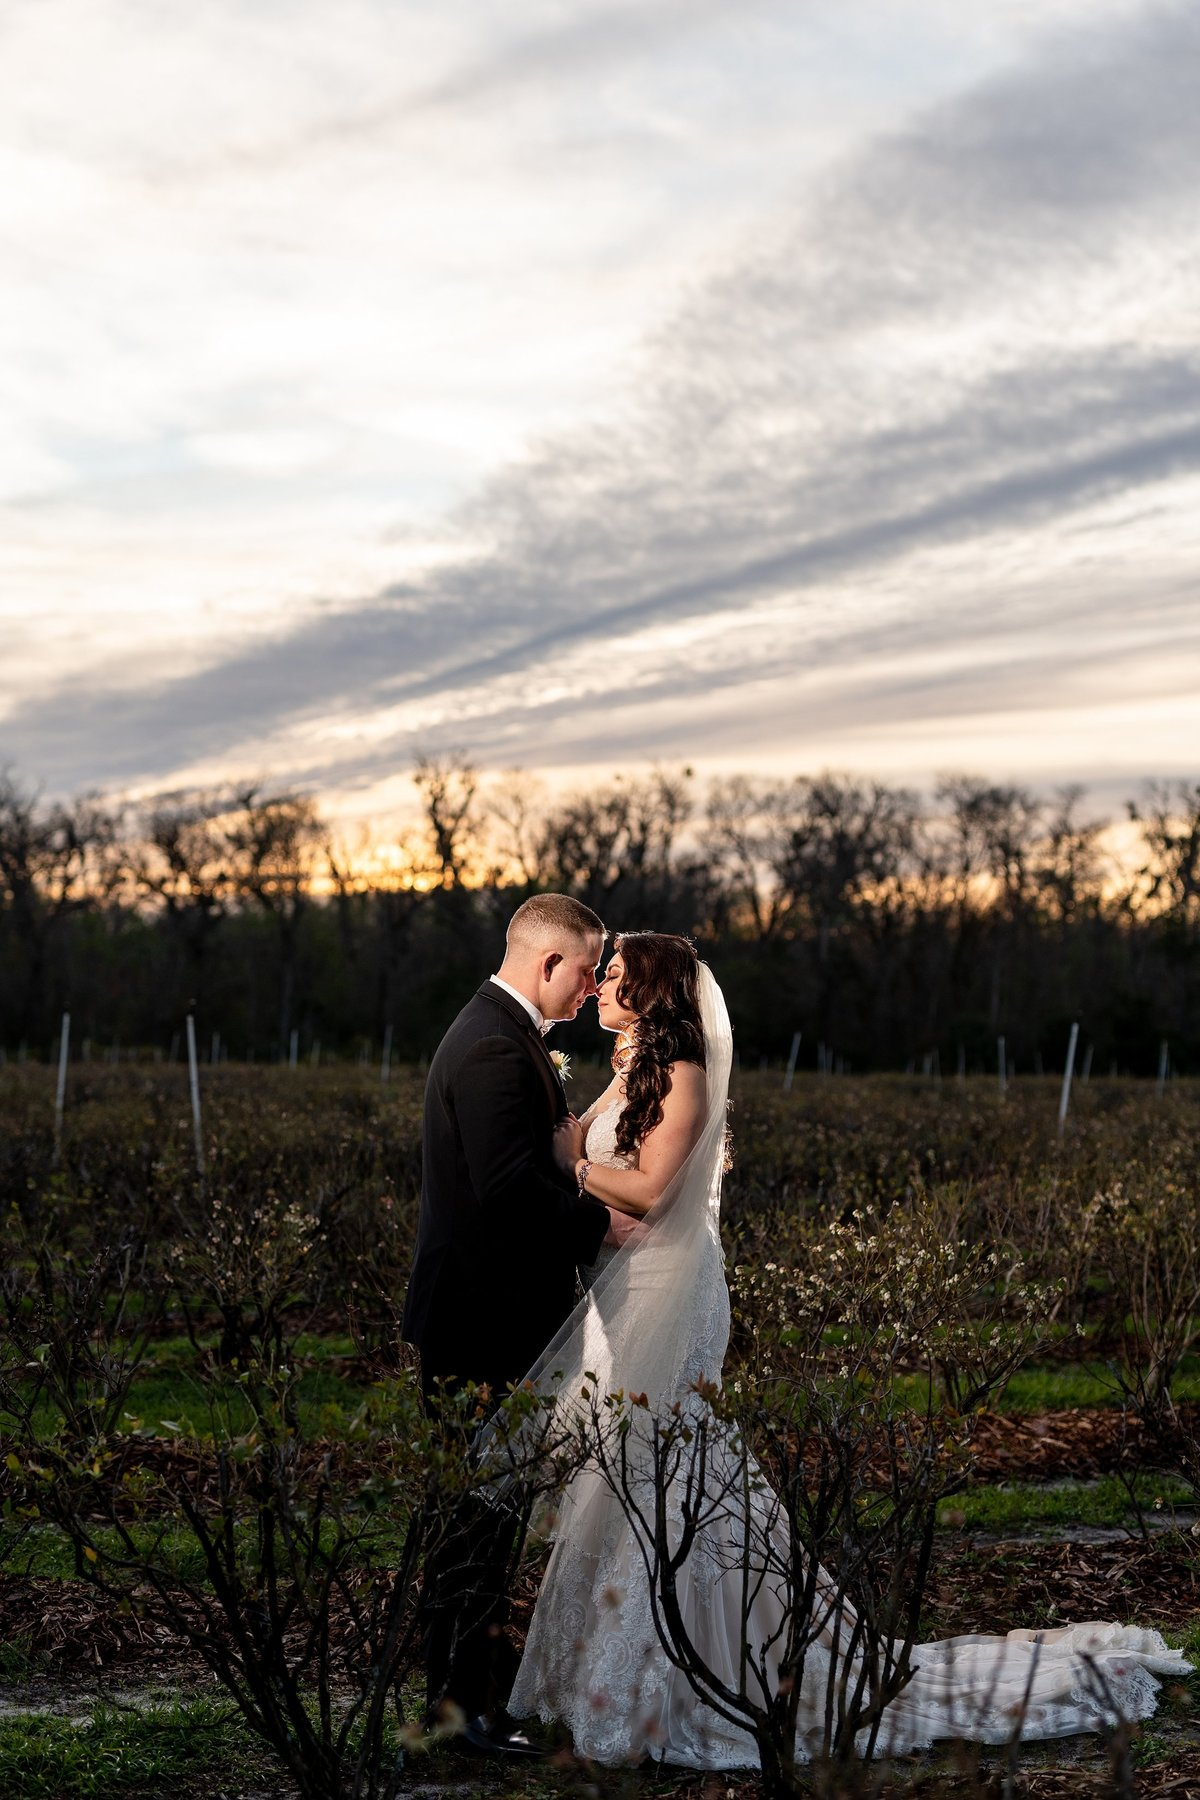 Orlando Wedding Photographer | Ever After Farms Wedding venue